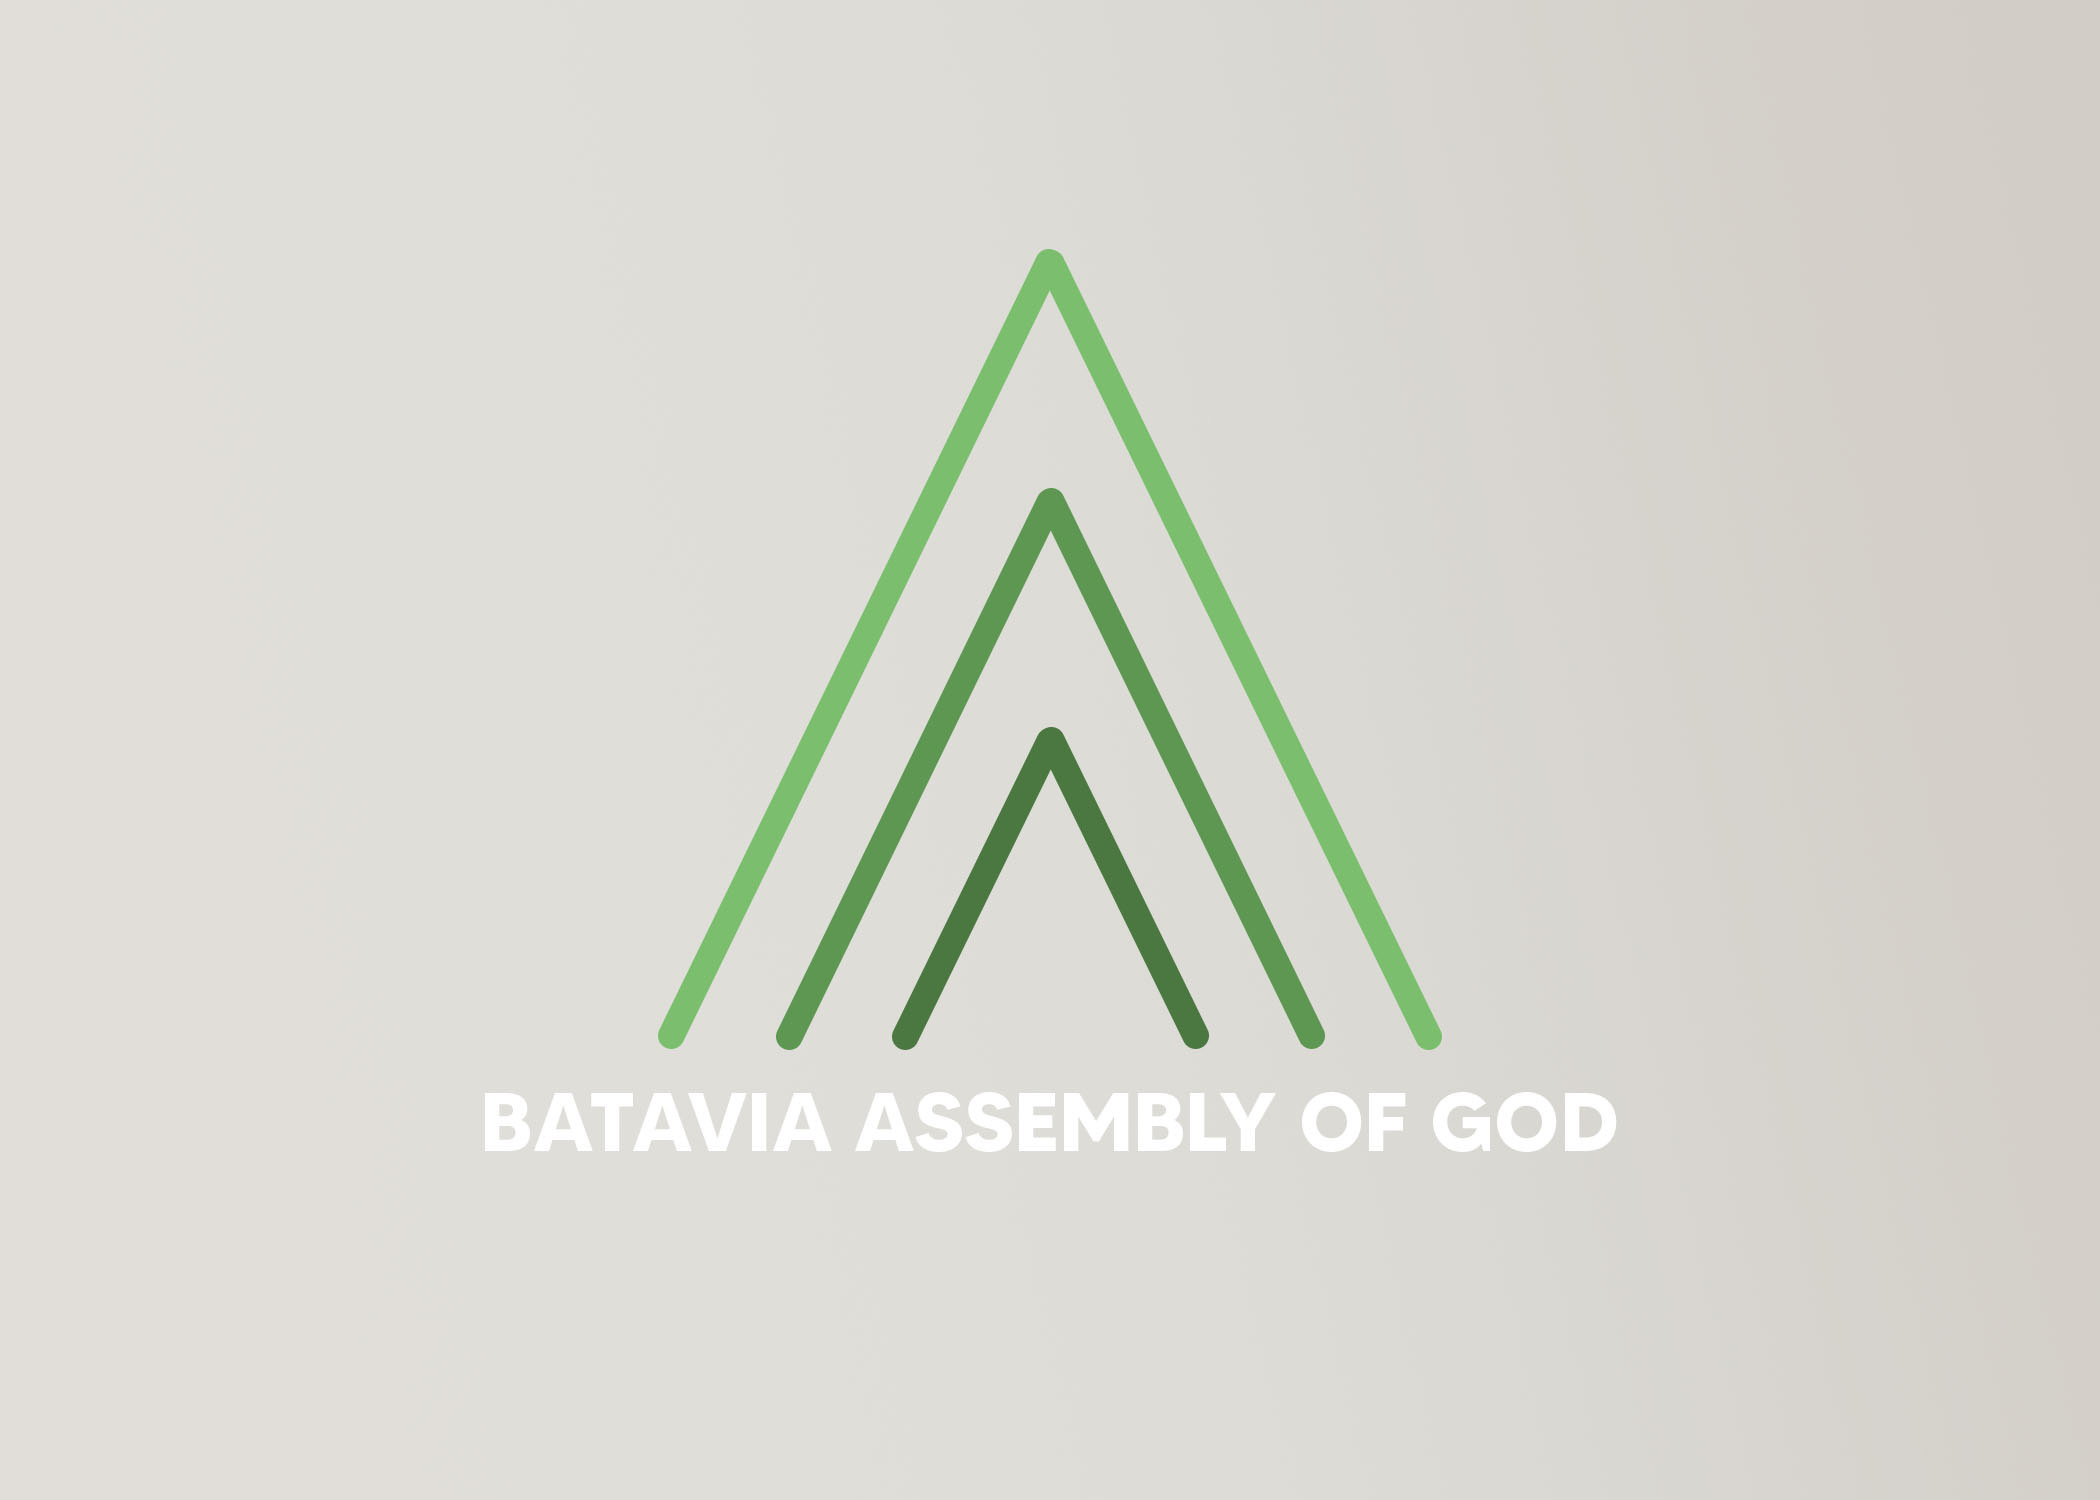 Batavia Assembly of God